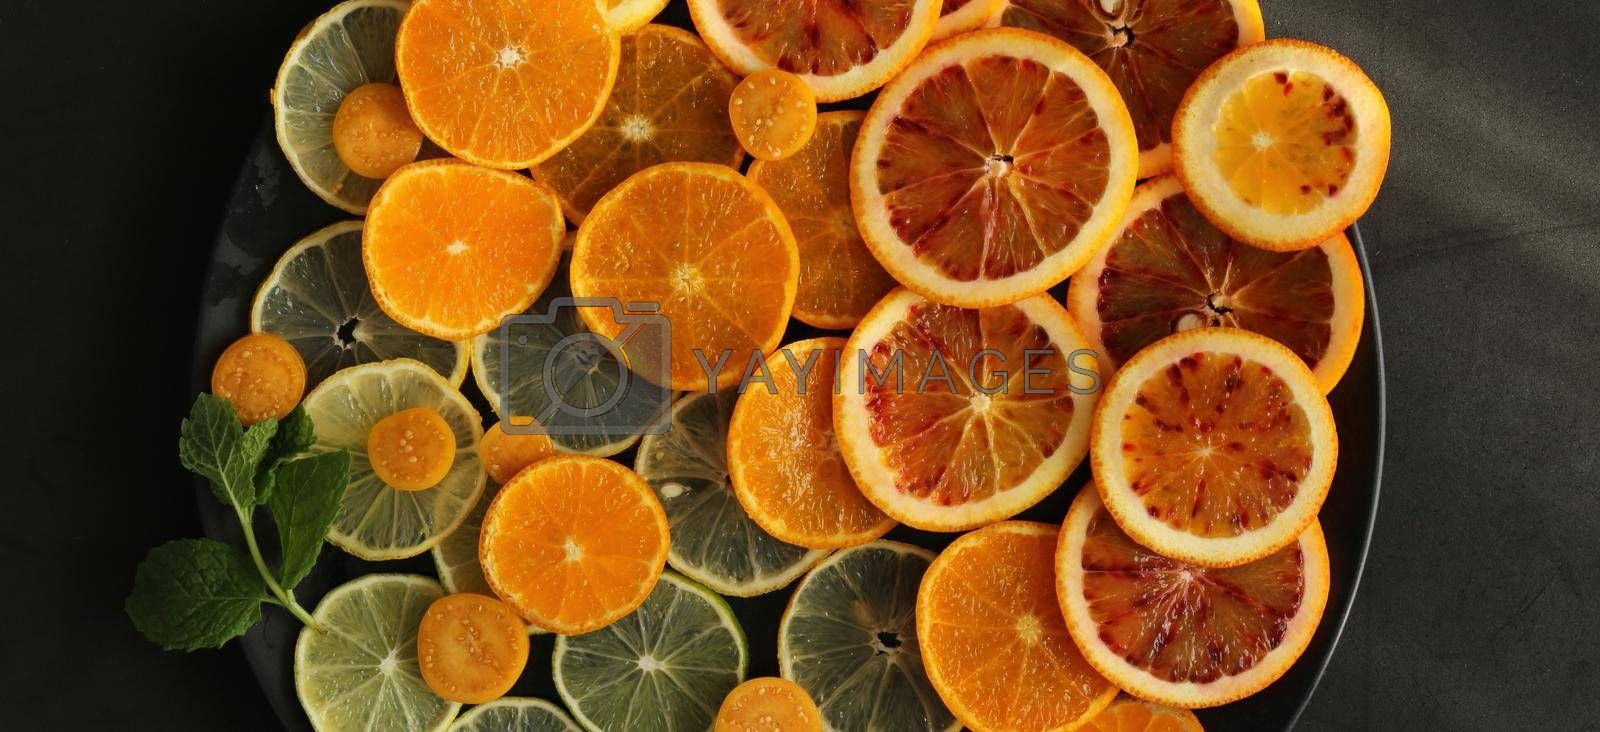 Fresh citruses on round plate on dark black stone background, flat lay. Oranges, clementine, mandarins, limes. Top view. Dramatic kitchen